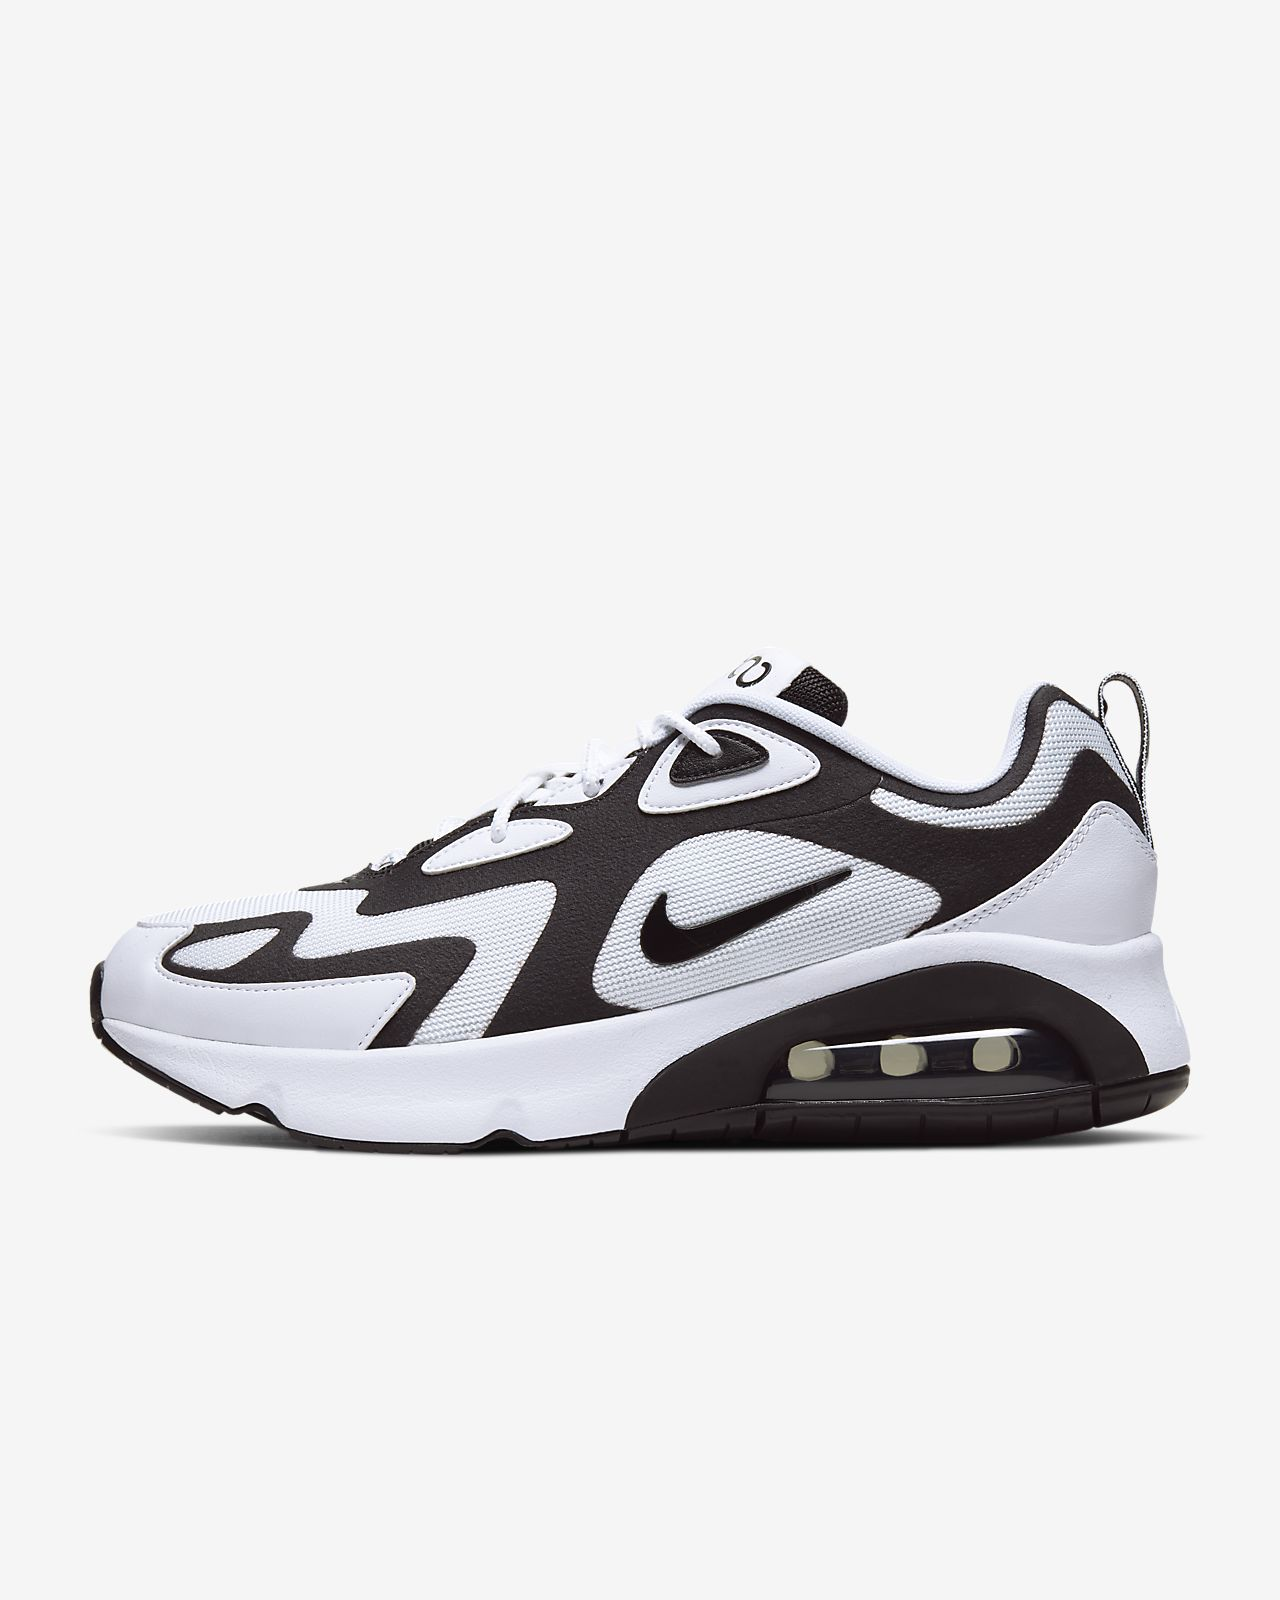 nike air max winter premium uomo model